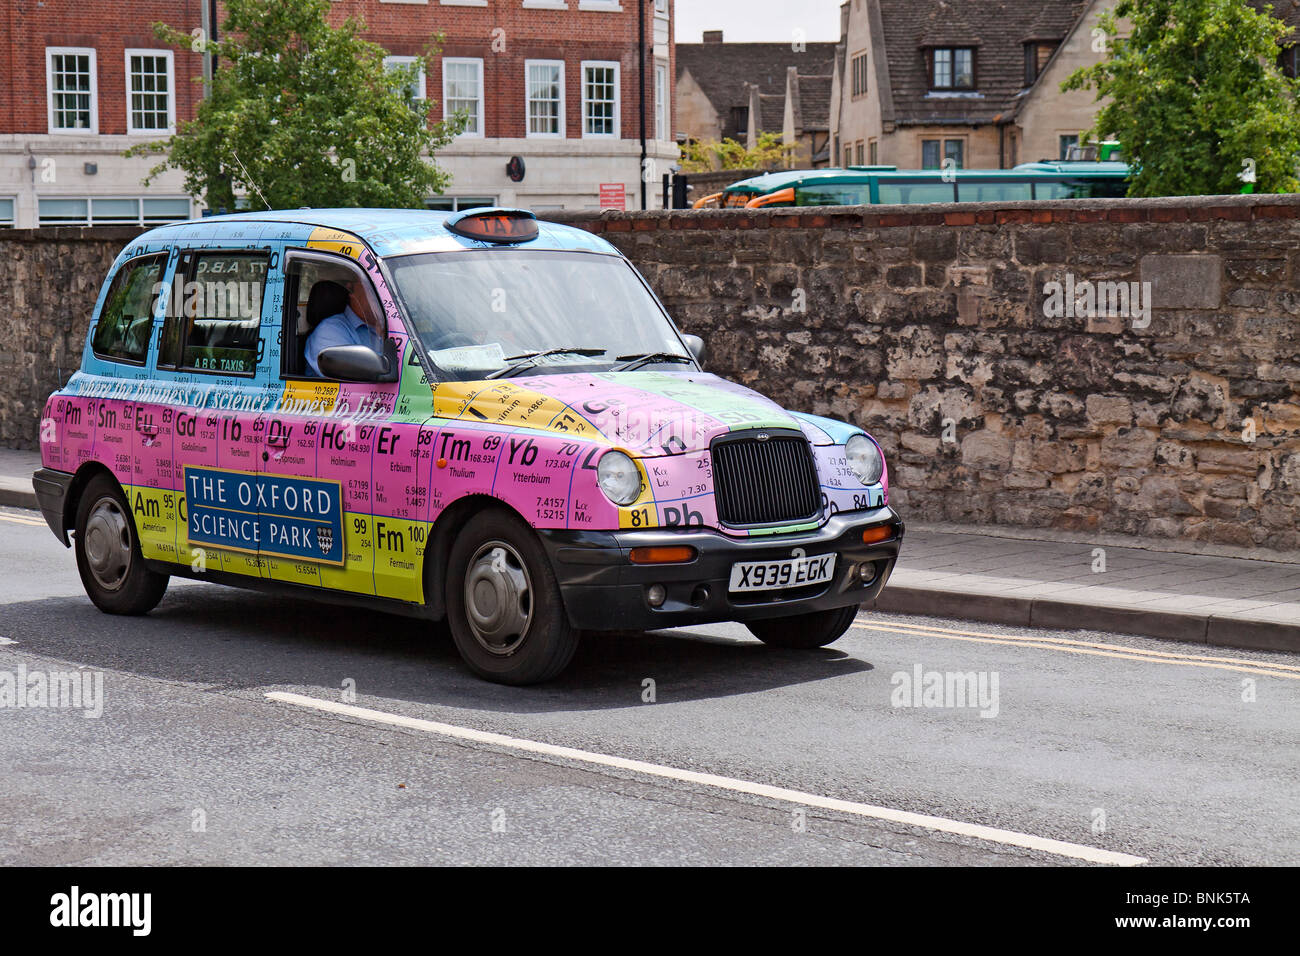 Uk oxford taxi displaying periodic table stock photo 30539834 alamy uk oxford taxi displaying periodic table urtaz Image collections